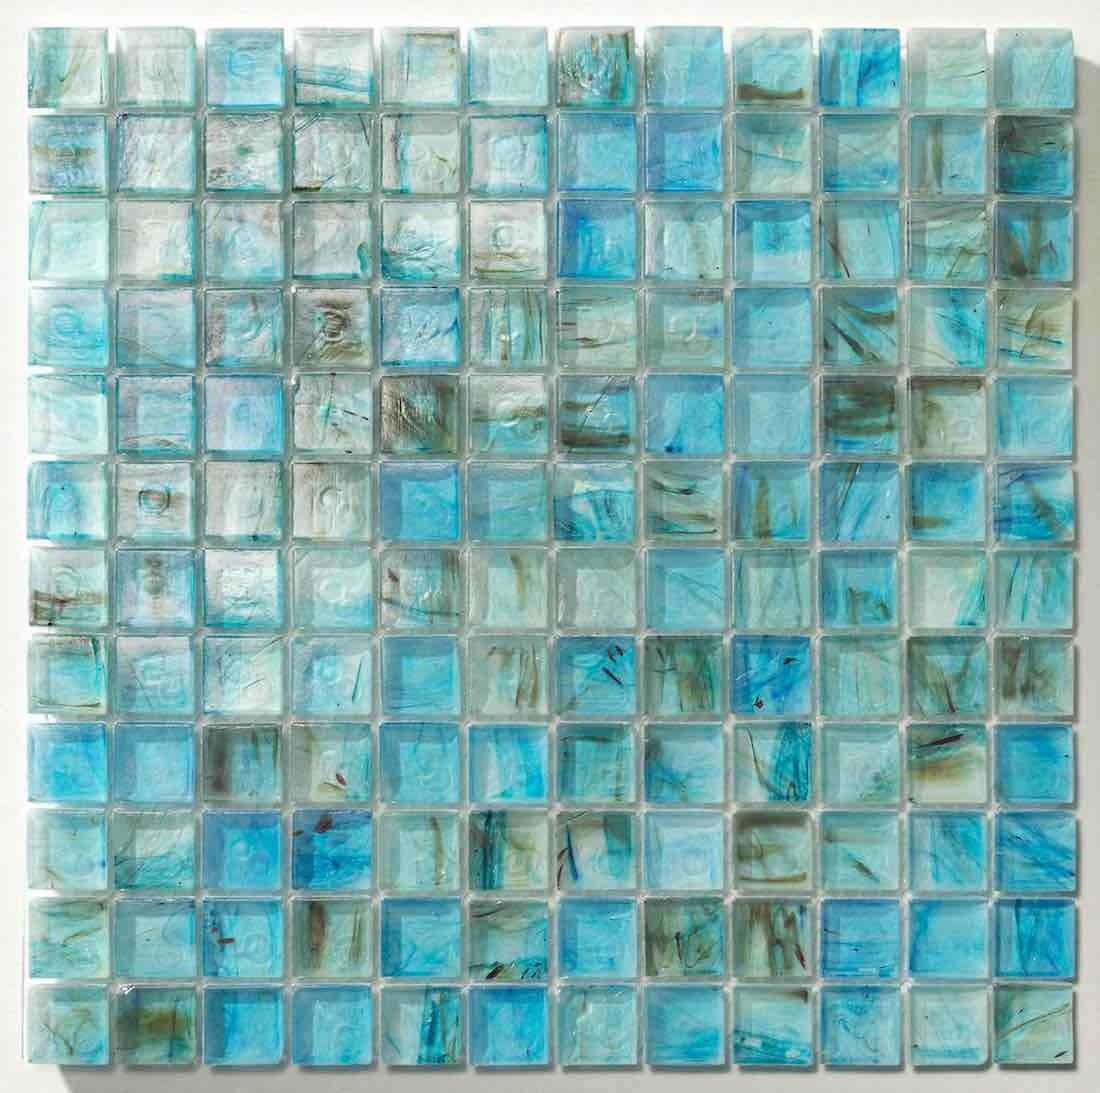 Clear Glass Mosaic Tile Stained Ocean Blue 1 X 1 Tile Stained Mosaic Glass Glass Mosaic Tiles